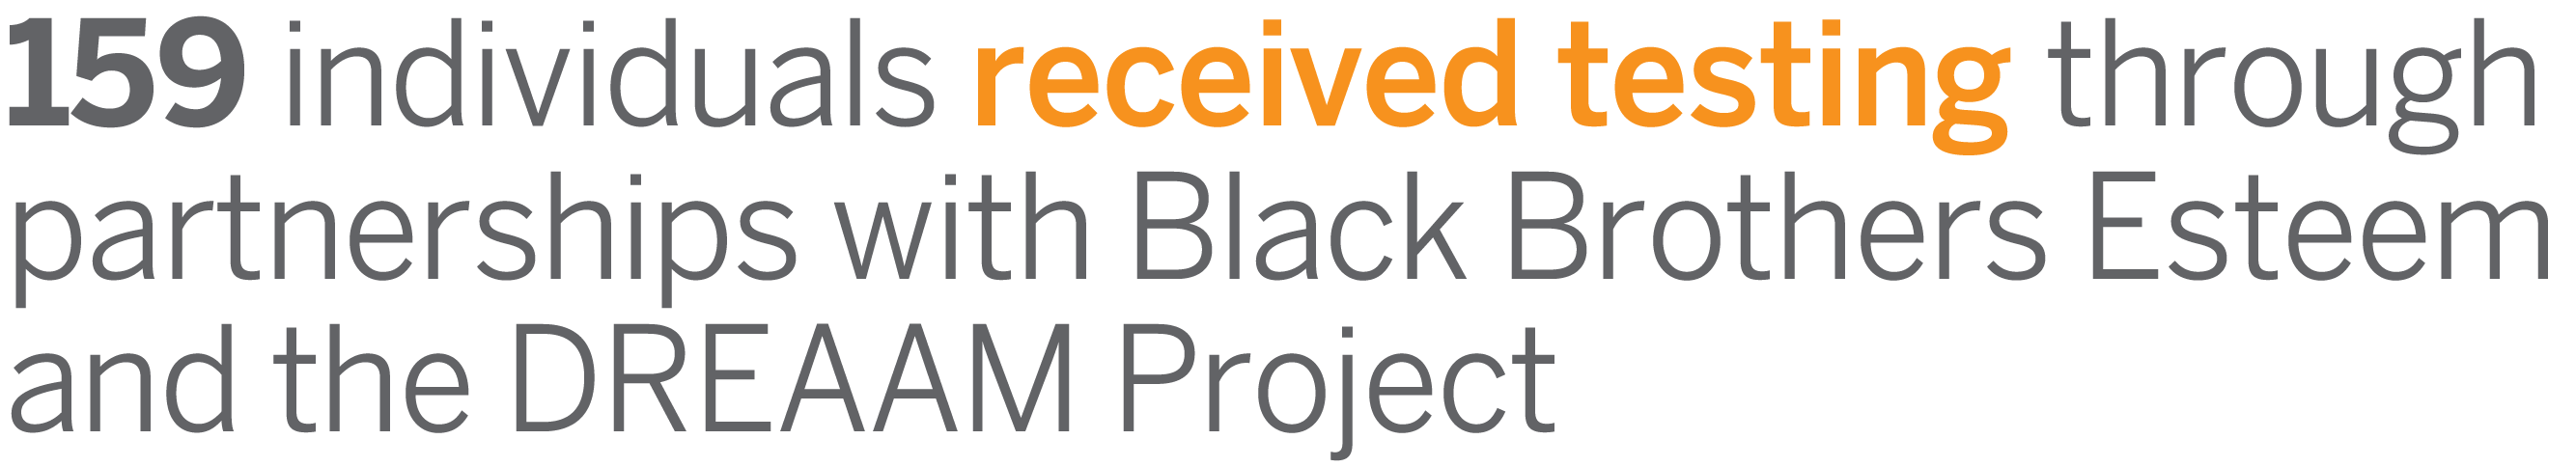 159 individuals received testing through partnerships with Black Brothers Esteem and the DREAAM Project